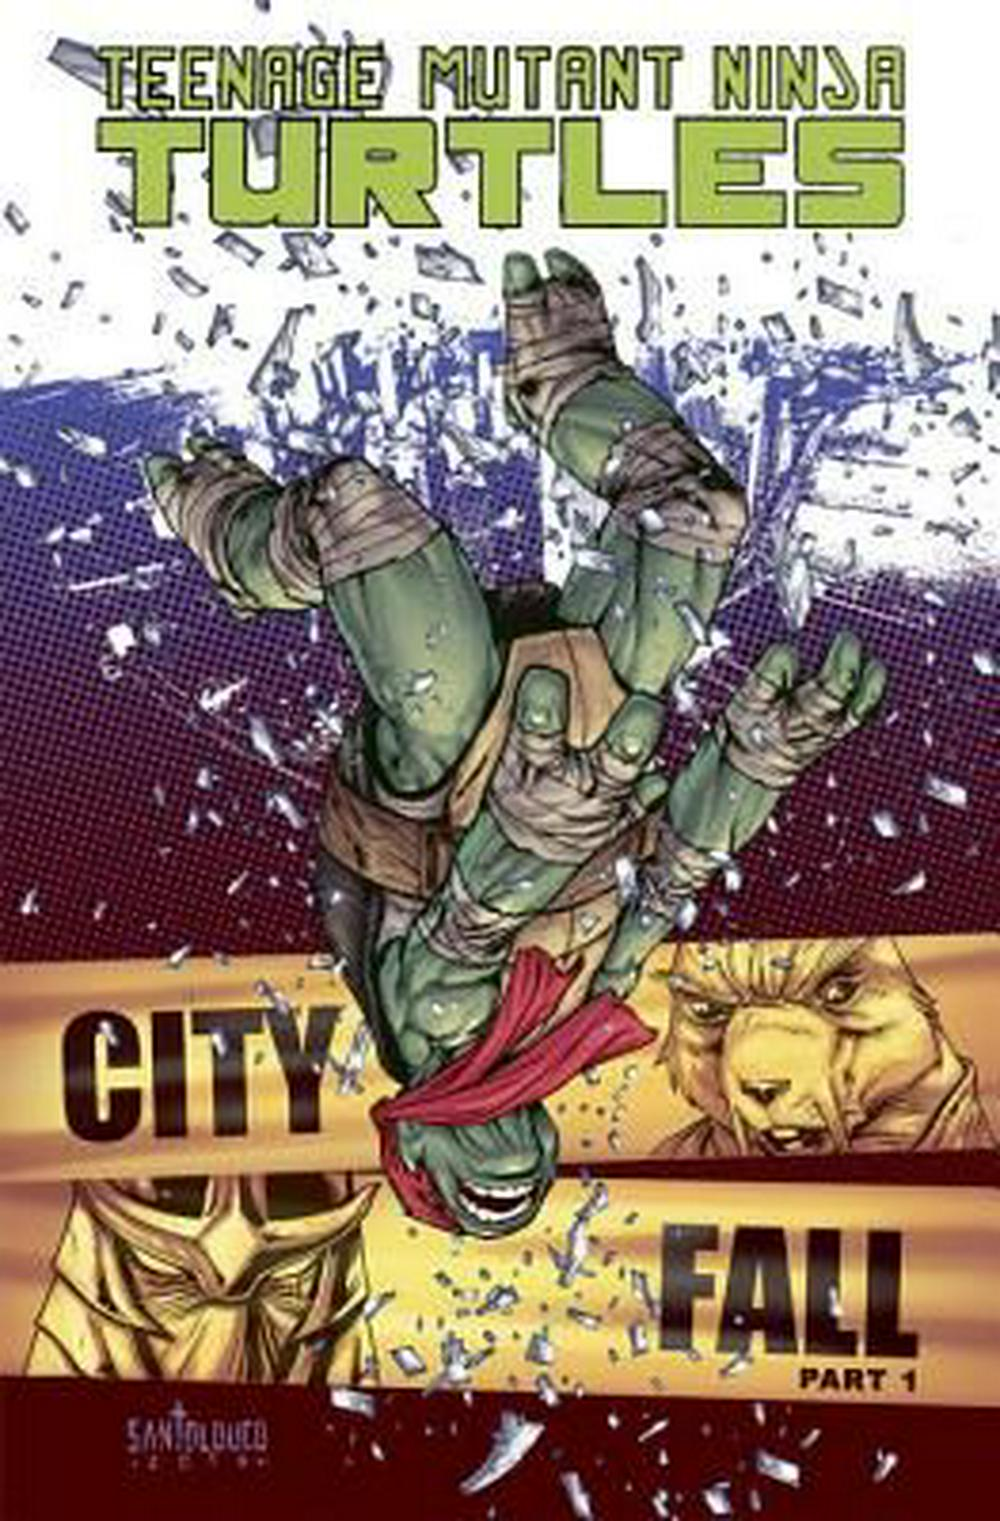 Teenage Mutant Ninja Turtles: City Fall Volume 6, Part 1 by Mateus Santolouco, ISBN: 9781613777831